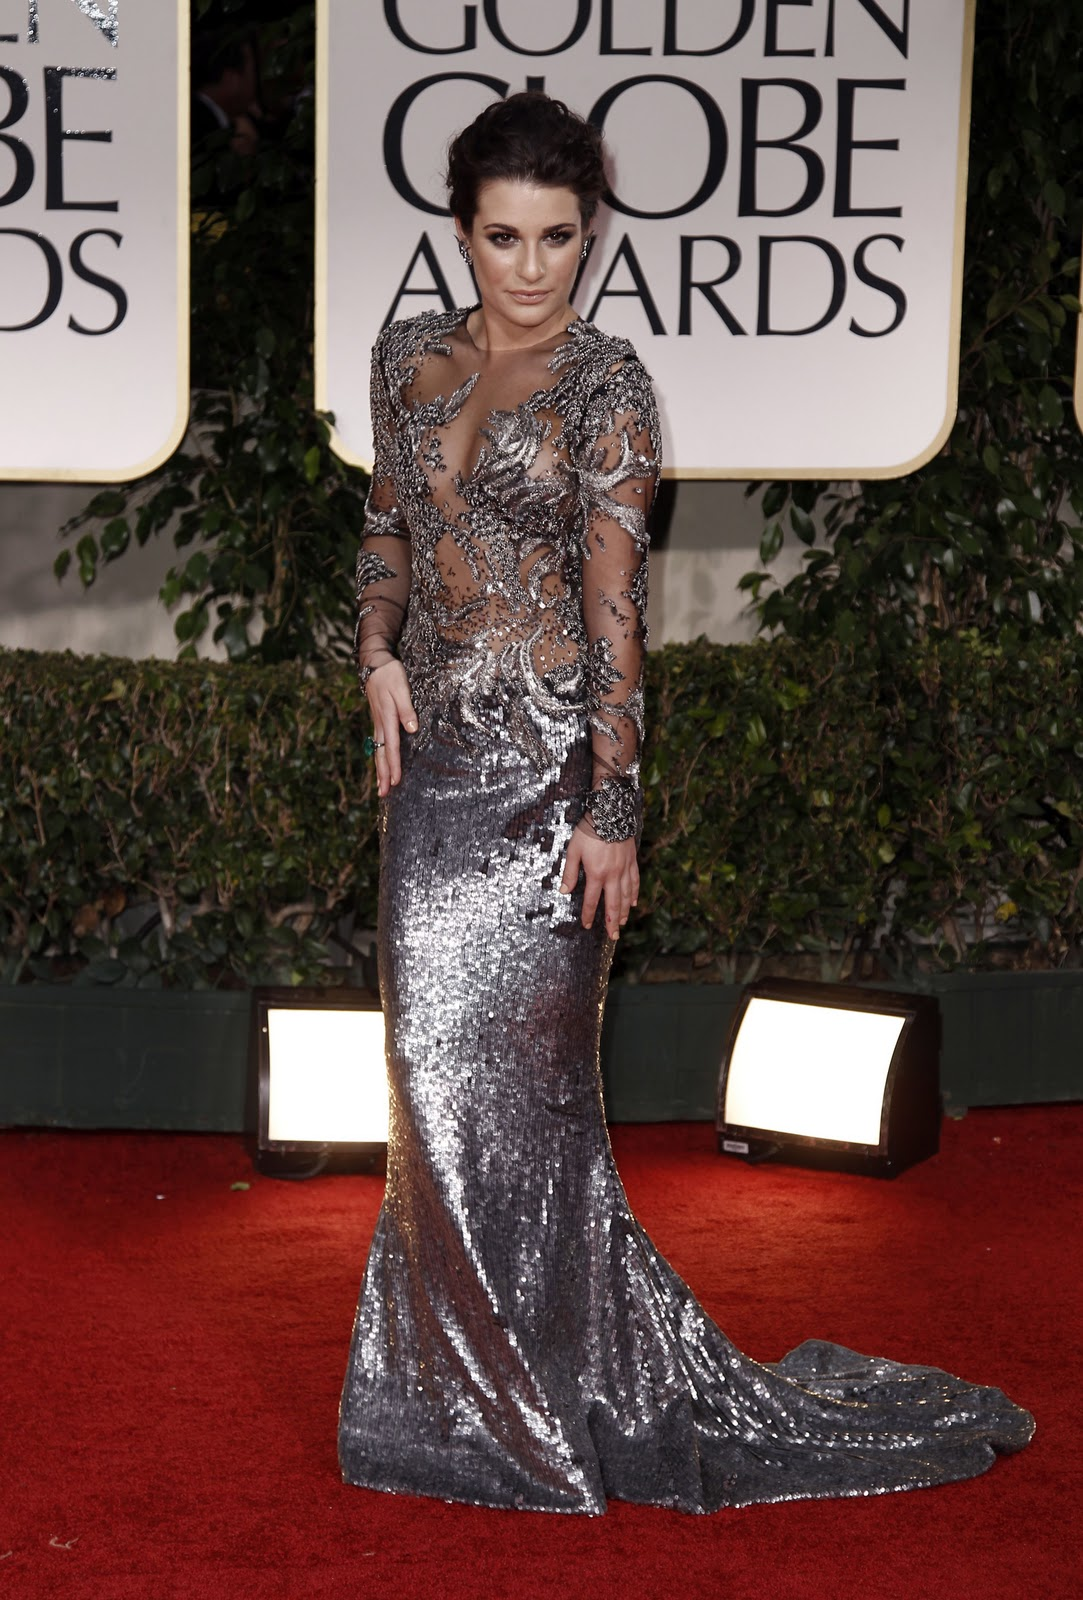 http://3.bp.blogspot.com/-F5ap3TLRs0A/TxSLKM0dfQI/AAAAAAAABzg/T9W_CGixZzc/s1600/CU-Lea+Michele+arrives+at+the+69th+Annual+Golden+Globe+Awards-07.jpg